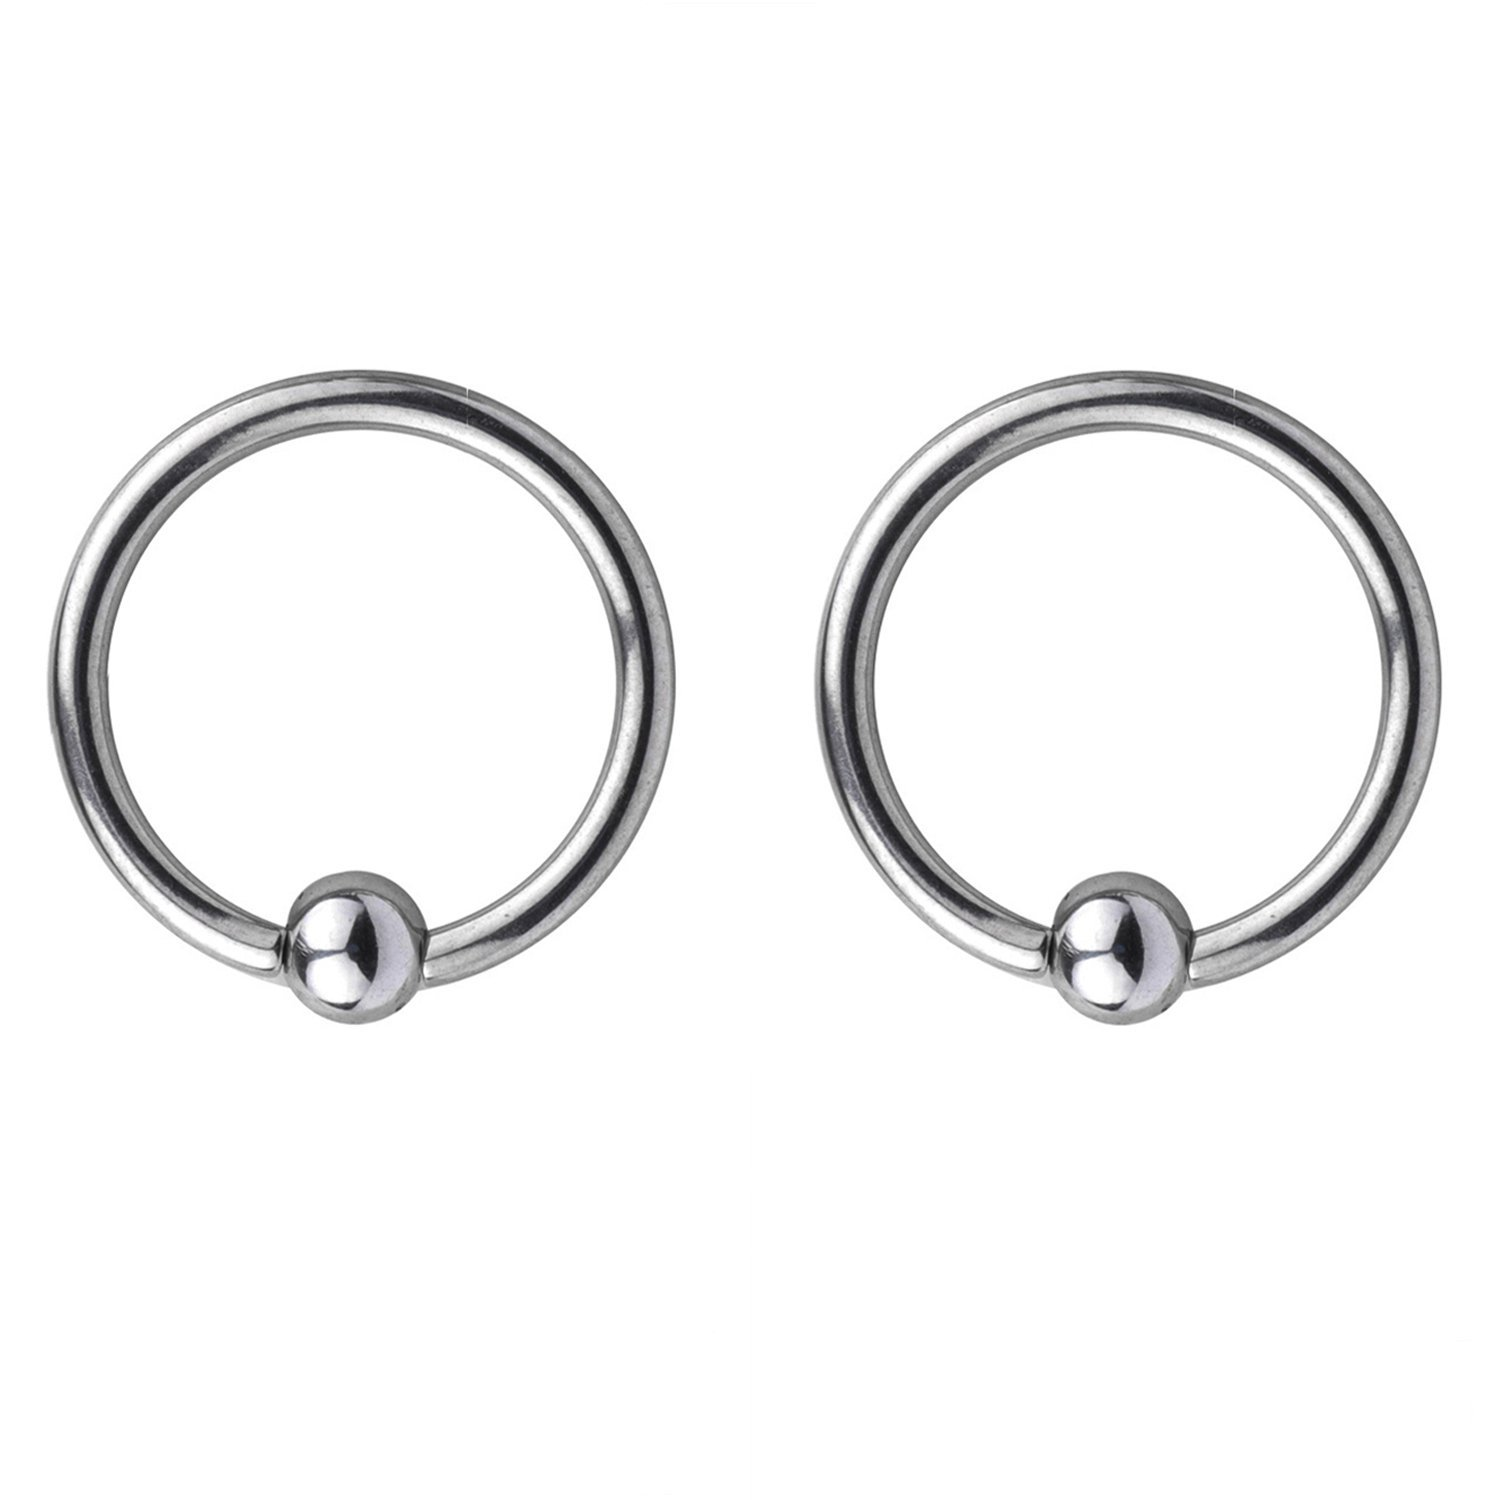 RJRK 16G Stainless Steel Nose Hoop Lip Eyebrow Tongue Helix Tragus Cartilage Septum Piercing Ring 10mm